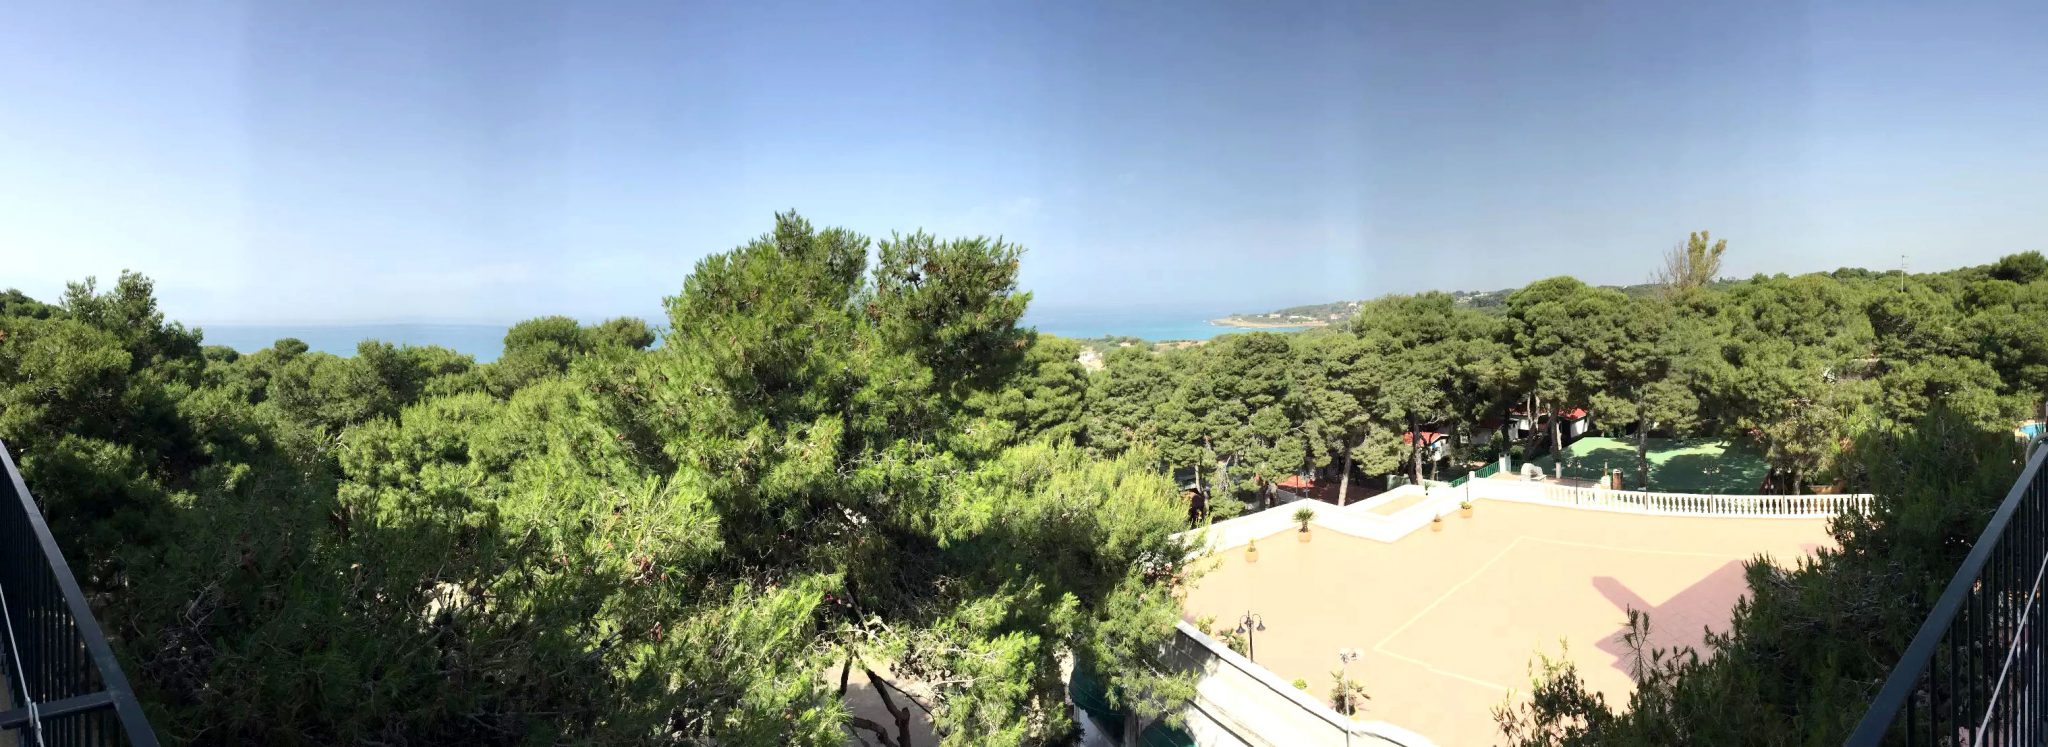 Marina di Pulsano Puglia Sunshine View Sea Pines